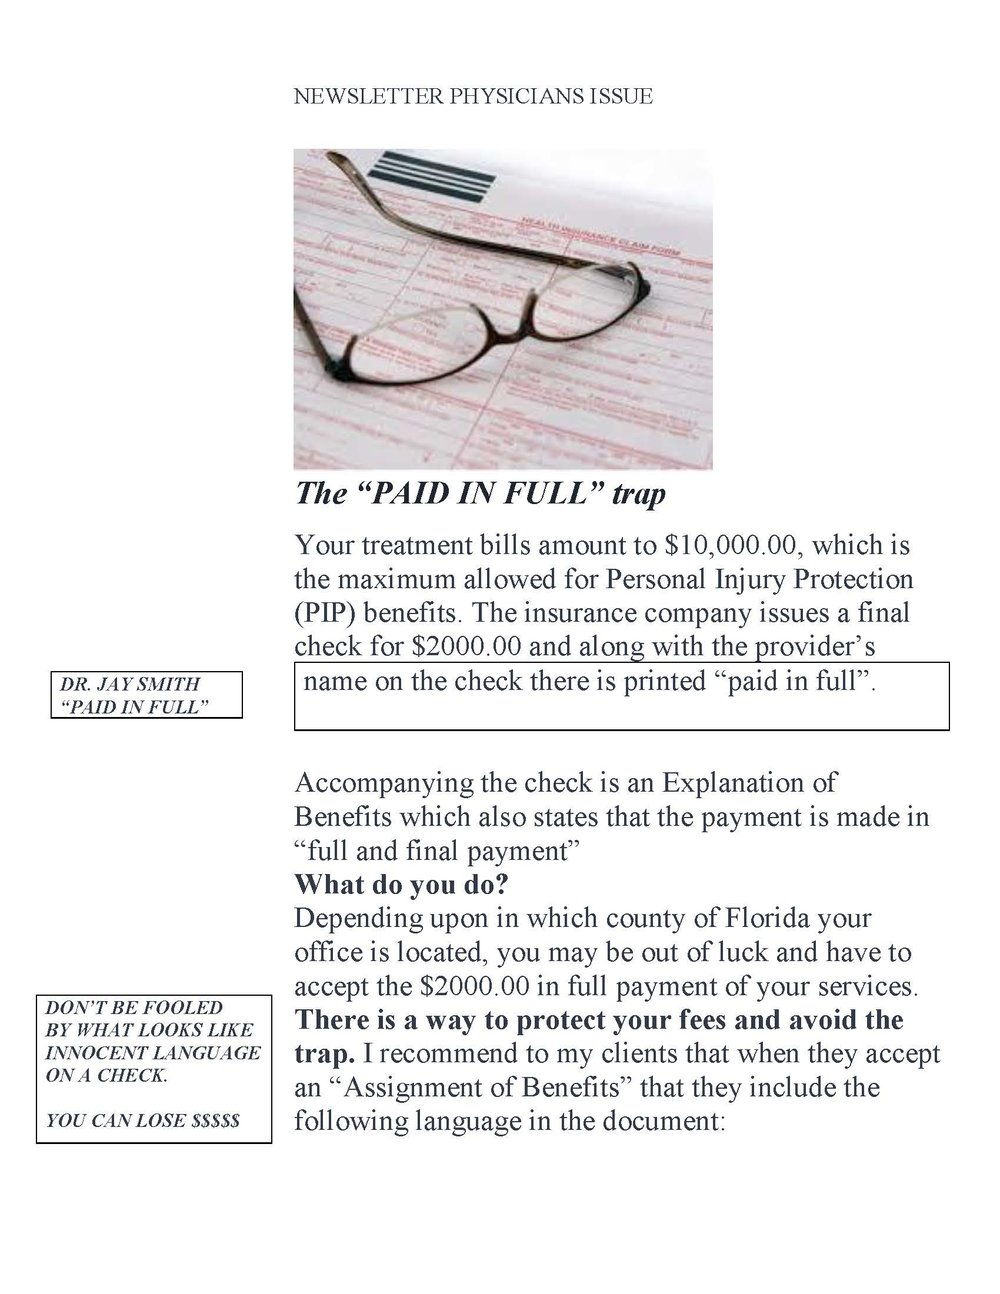 NEWSLETTER PHYSICIANS ISSUE_Page_1.jpg